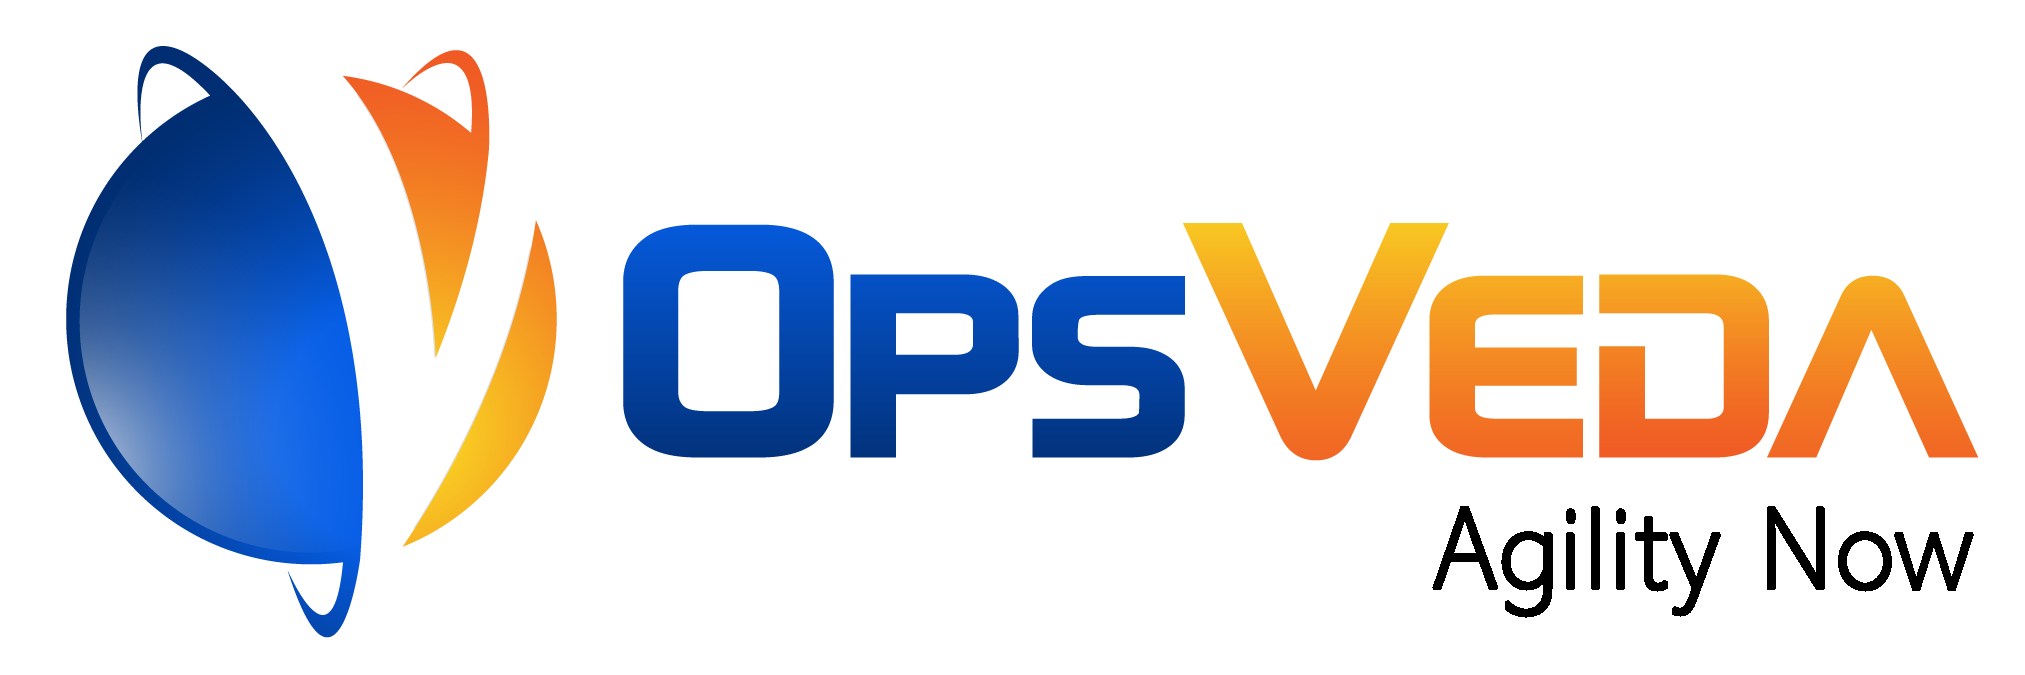 OPSVEDA logo option 2 transparency with Tagline_V2_CRP